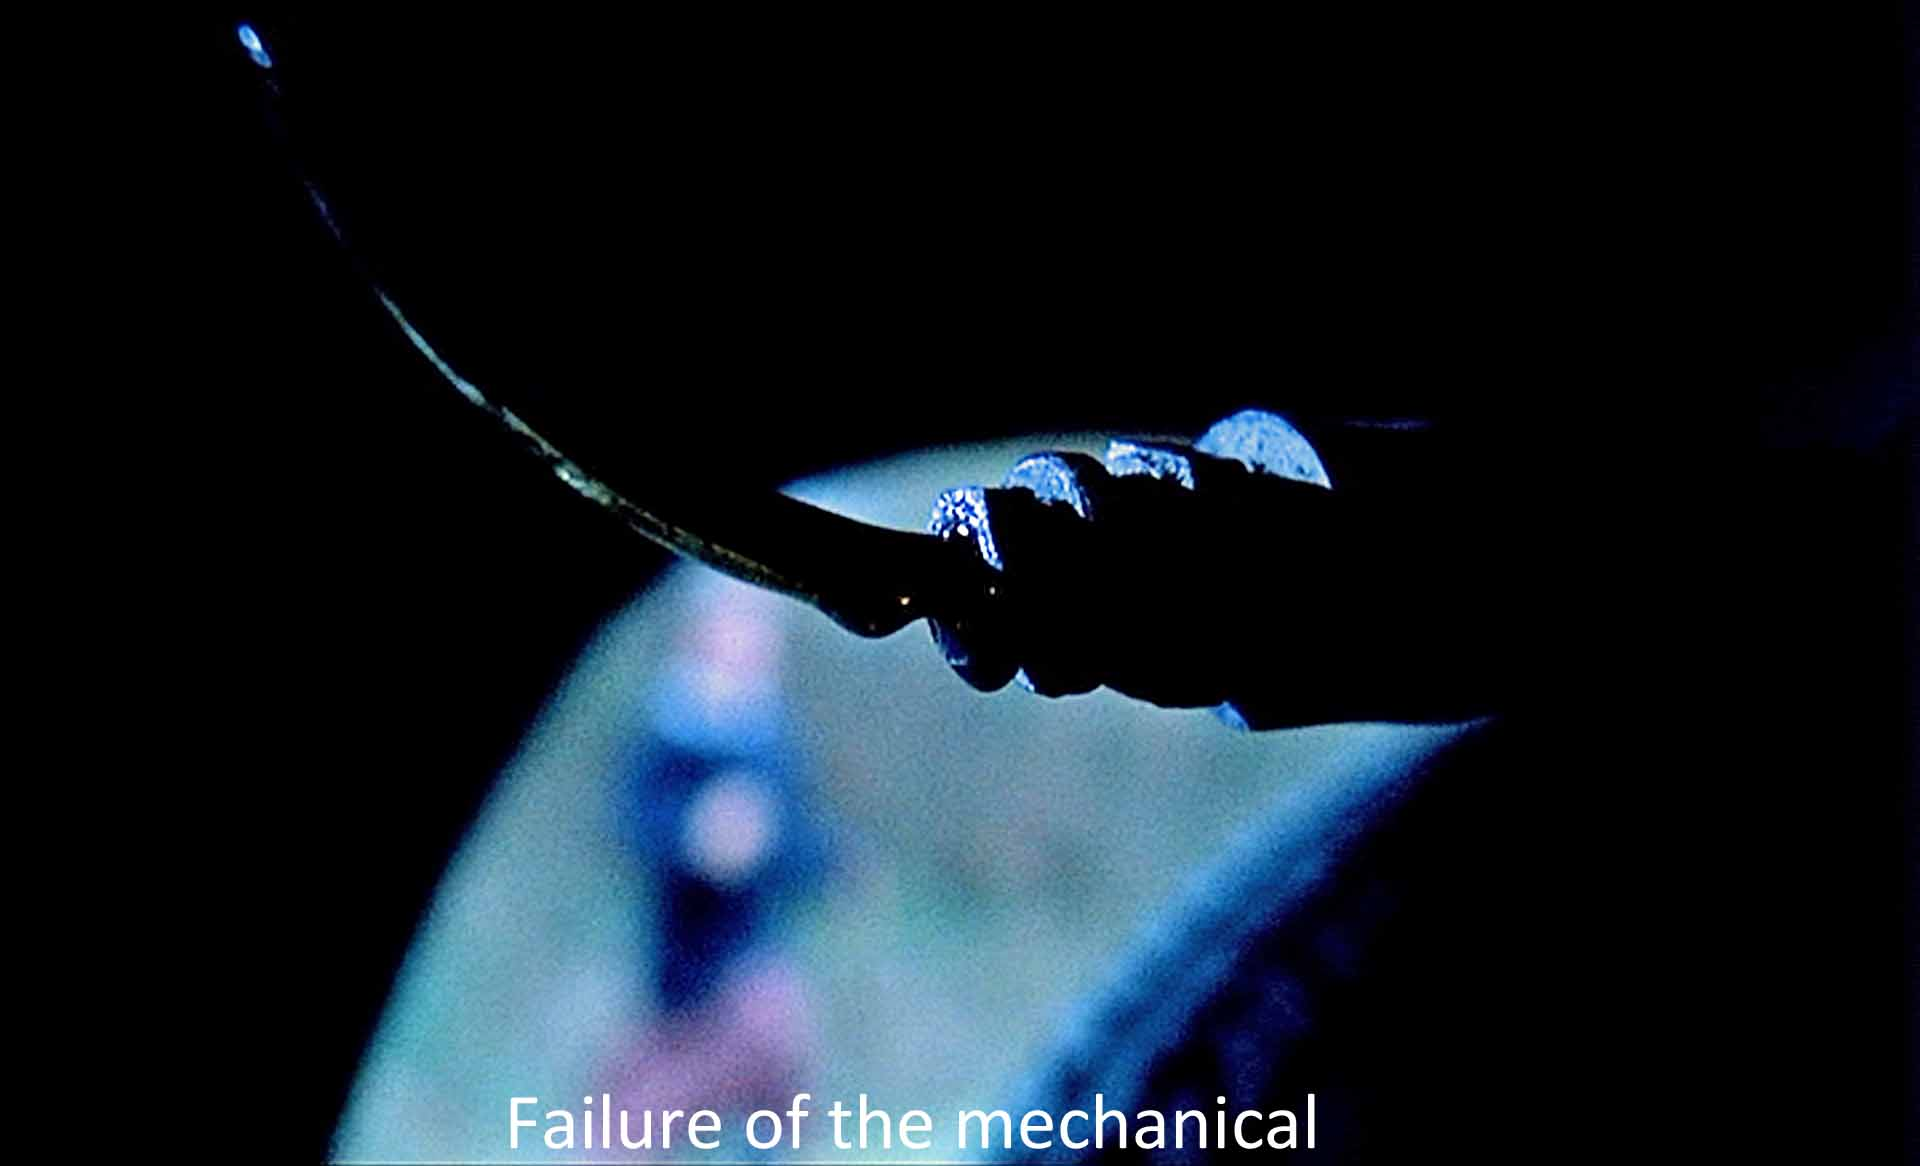 Failure of the mechanical